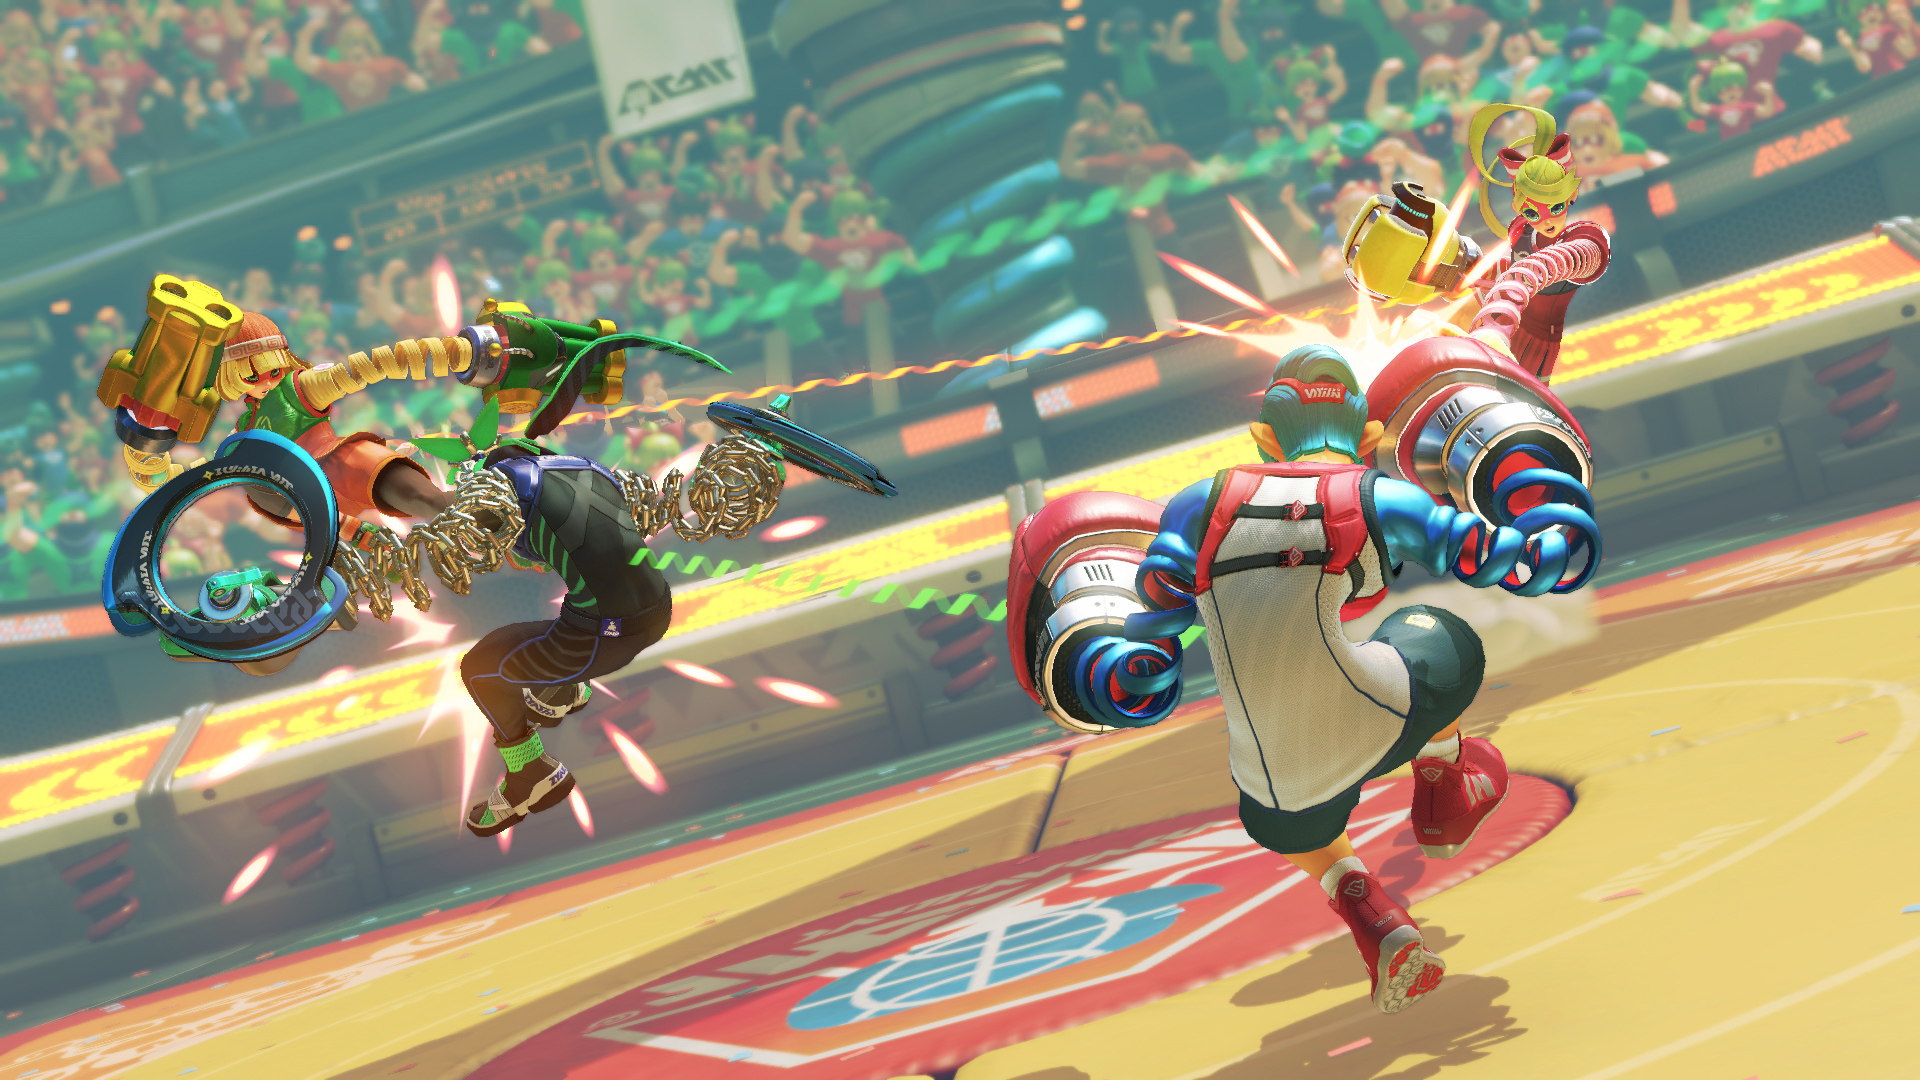 The Global Testpunch left me feeling optimistic about Arms screenshot